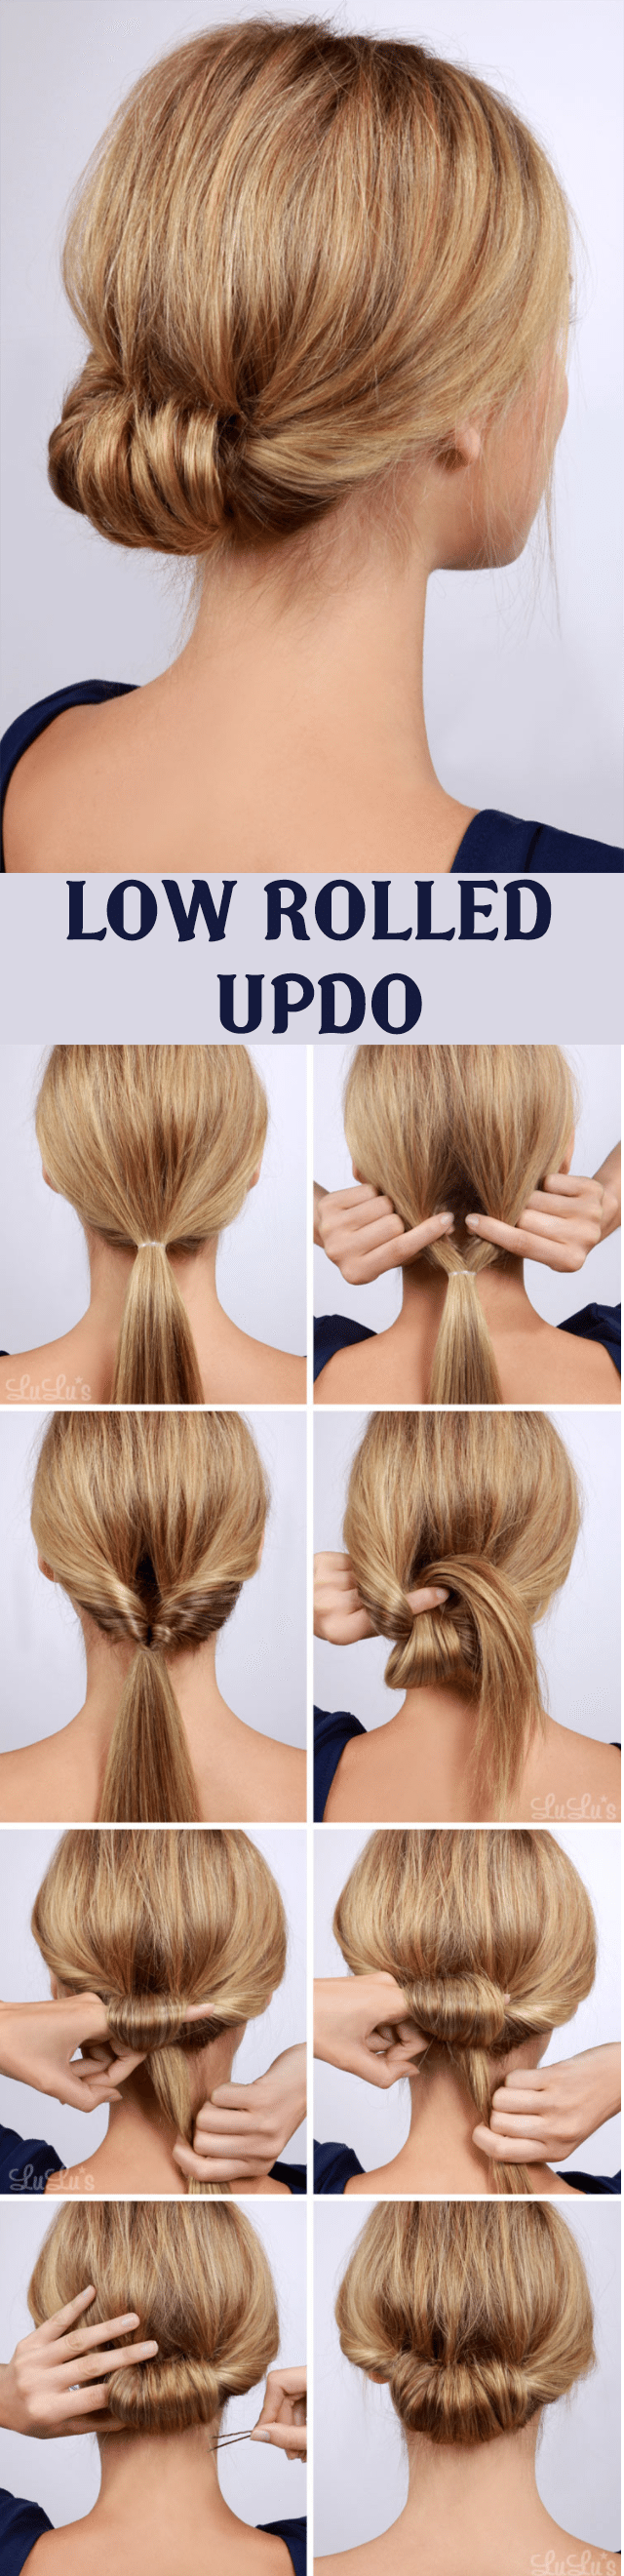 LOW ROLLED UPDO HAIRSTYLE